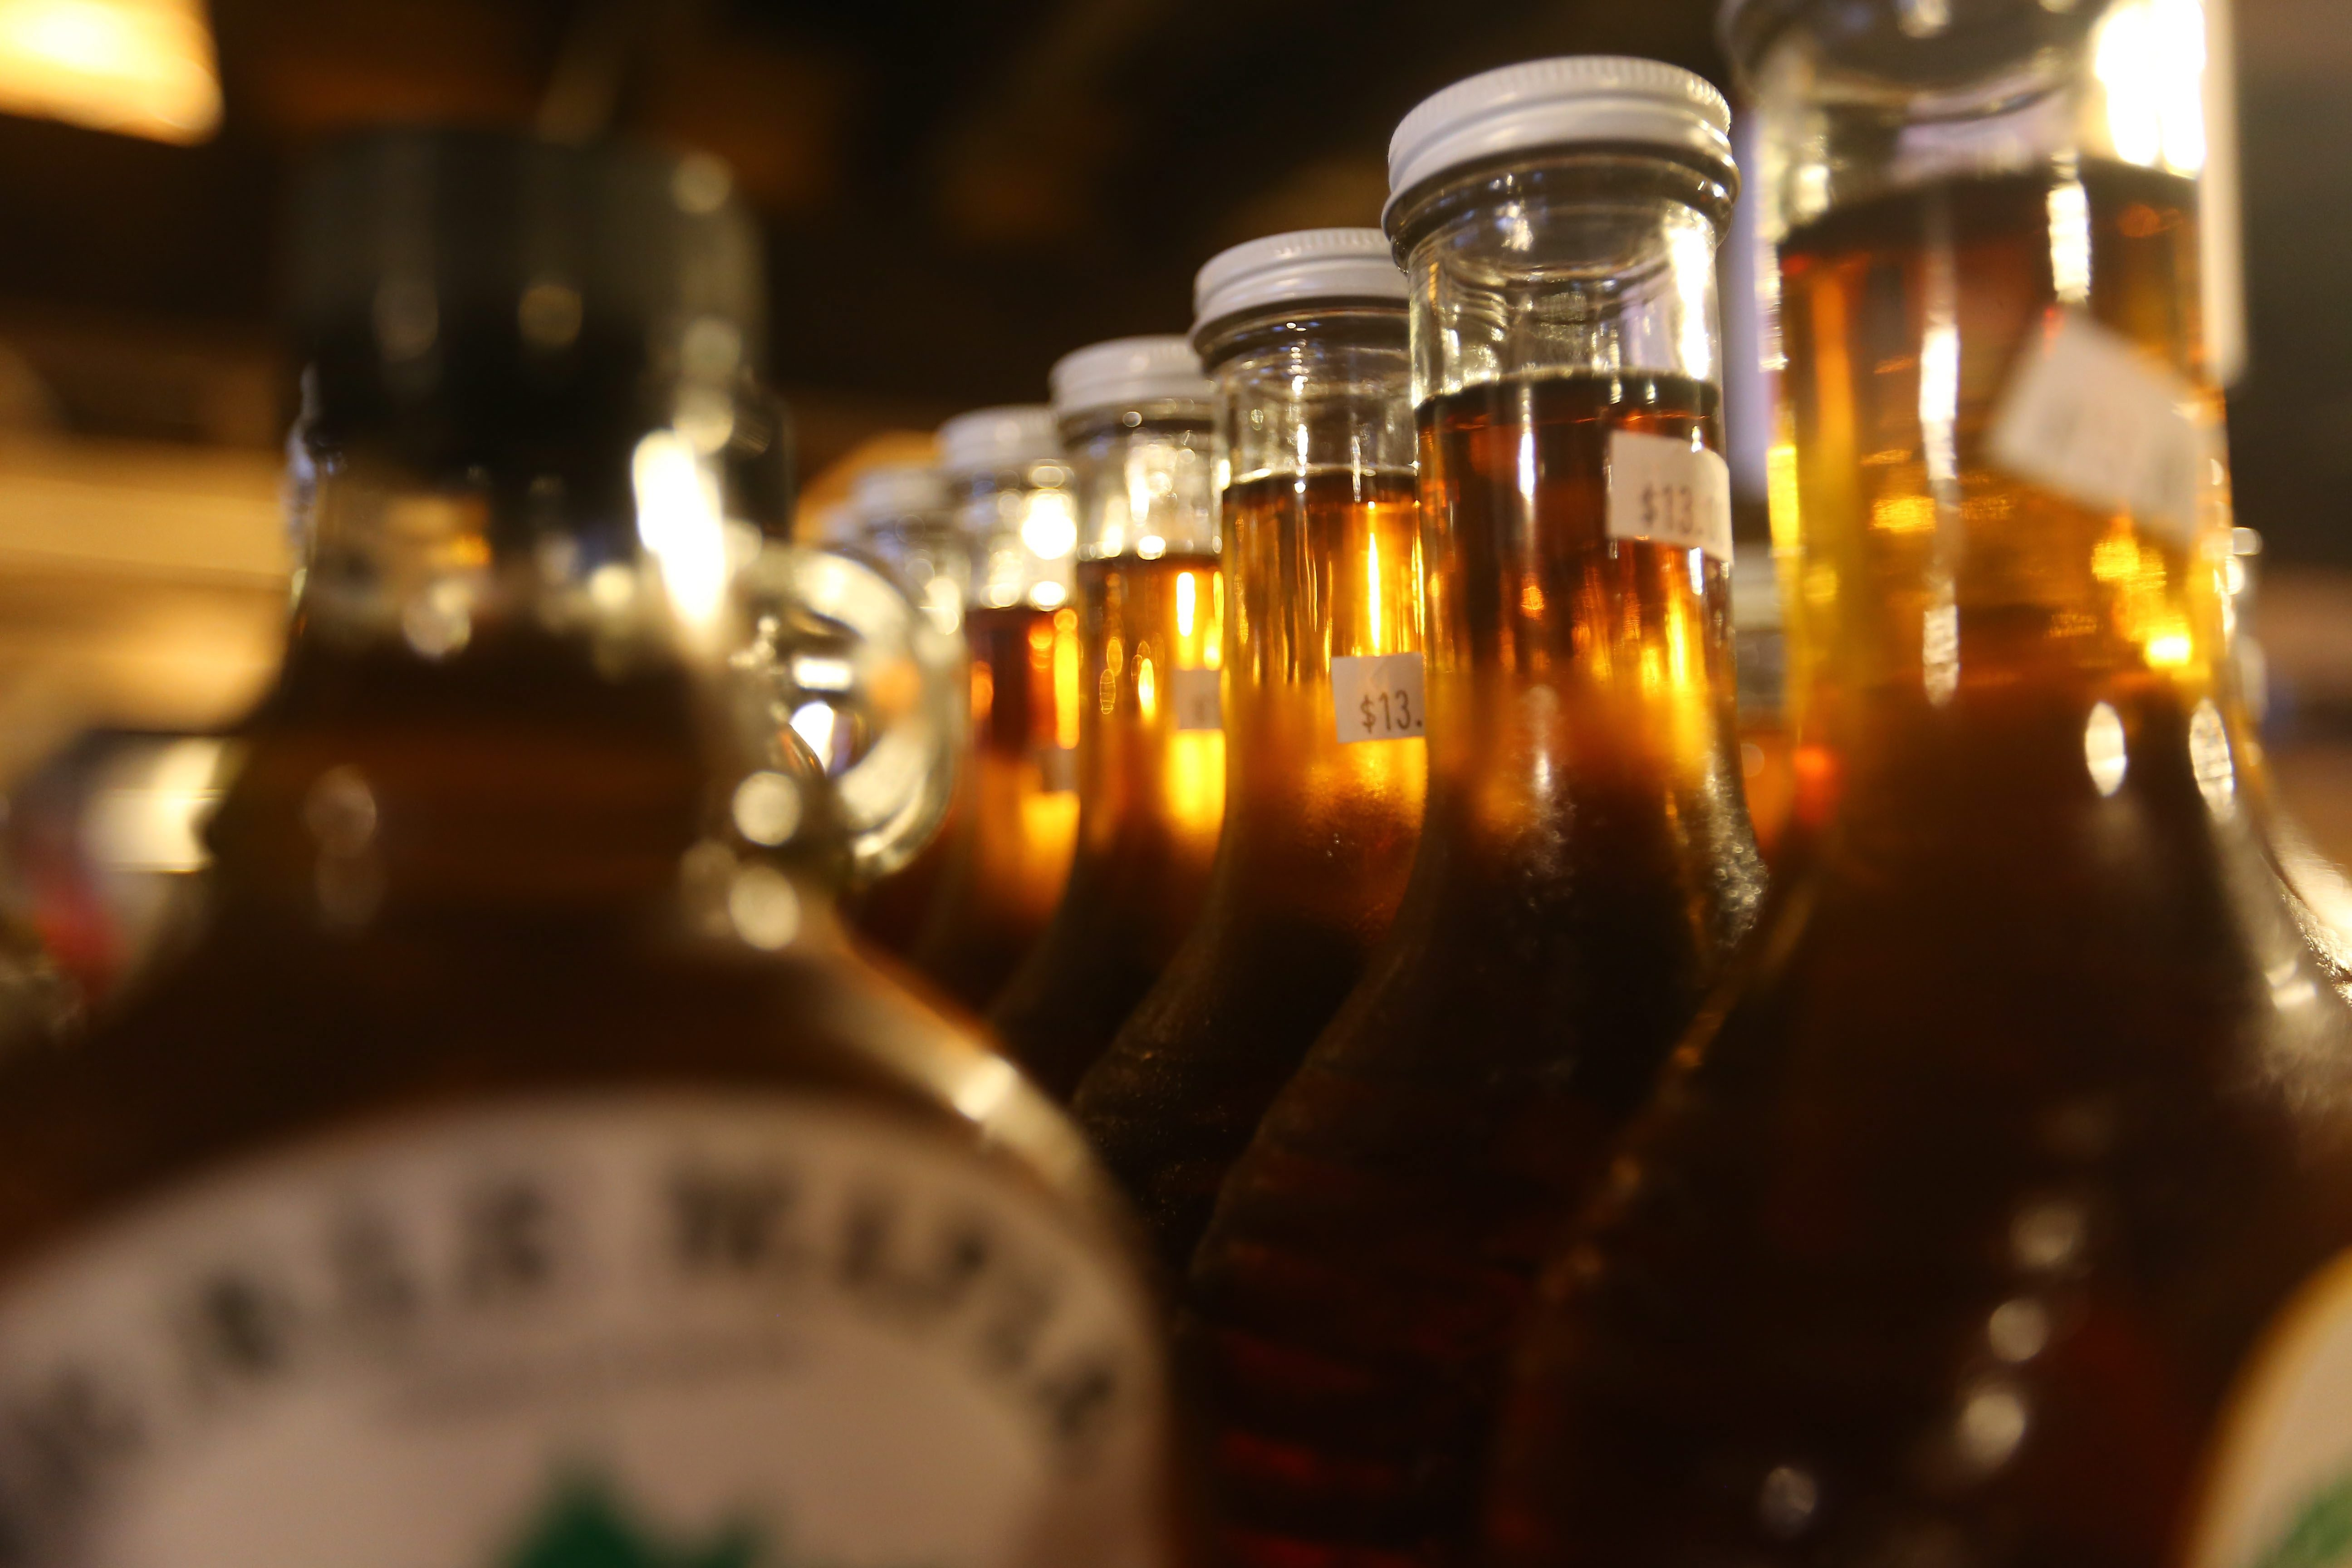 Syrup will take center stage during Maple Weekend festivities across Western New York.